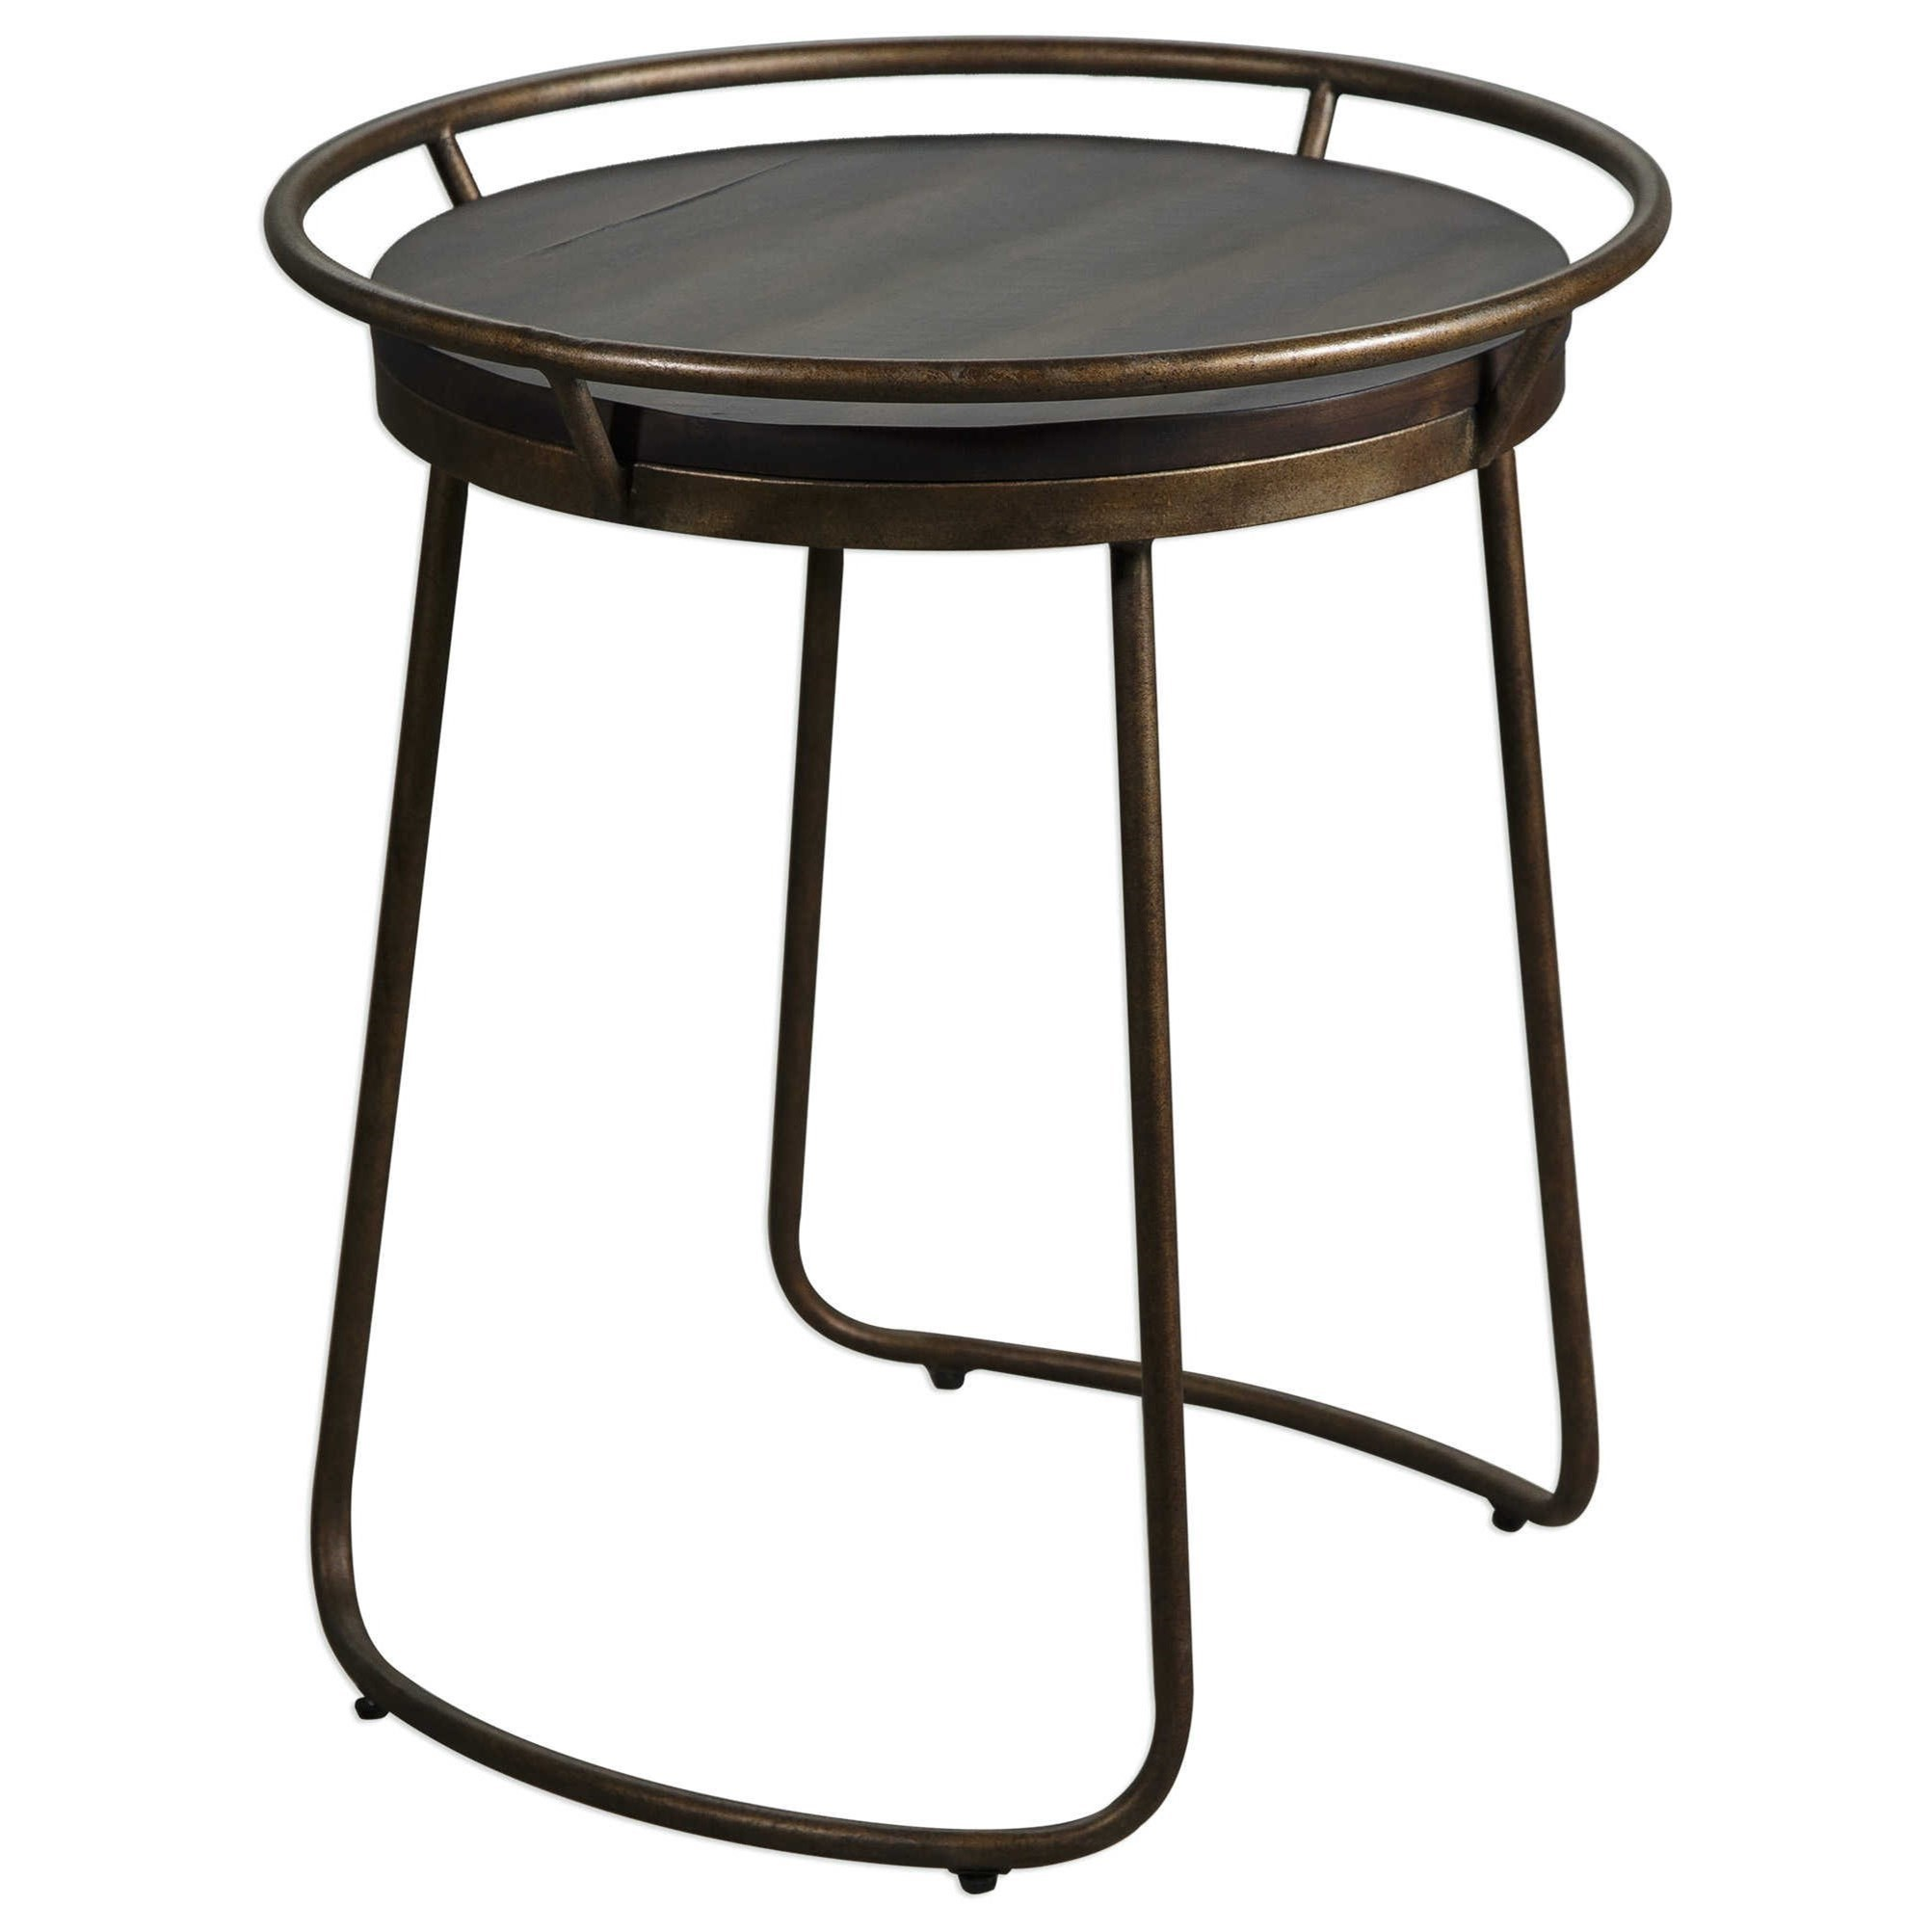 uttermost accent furniture rayen round table suburban products color laton mirrored west elm tripod floor lamp small glass metal hairpin legs silver trunk coffee pallet and end